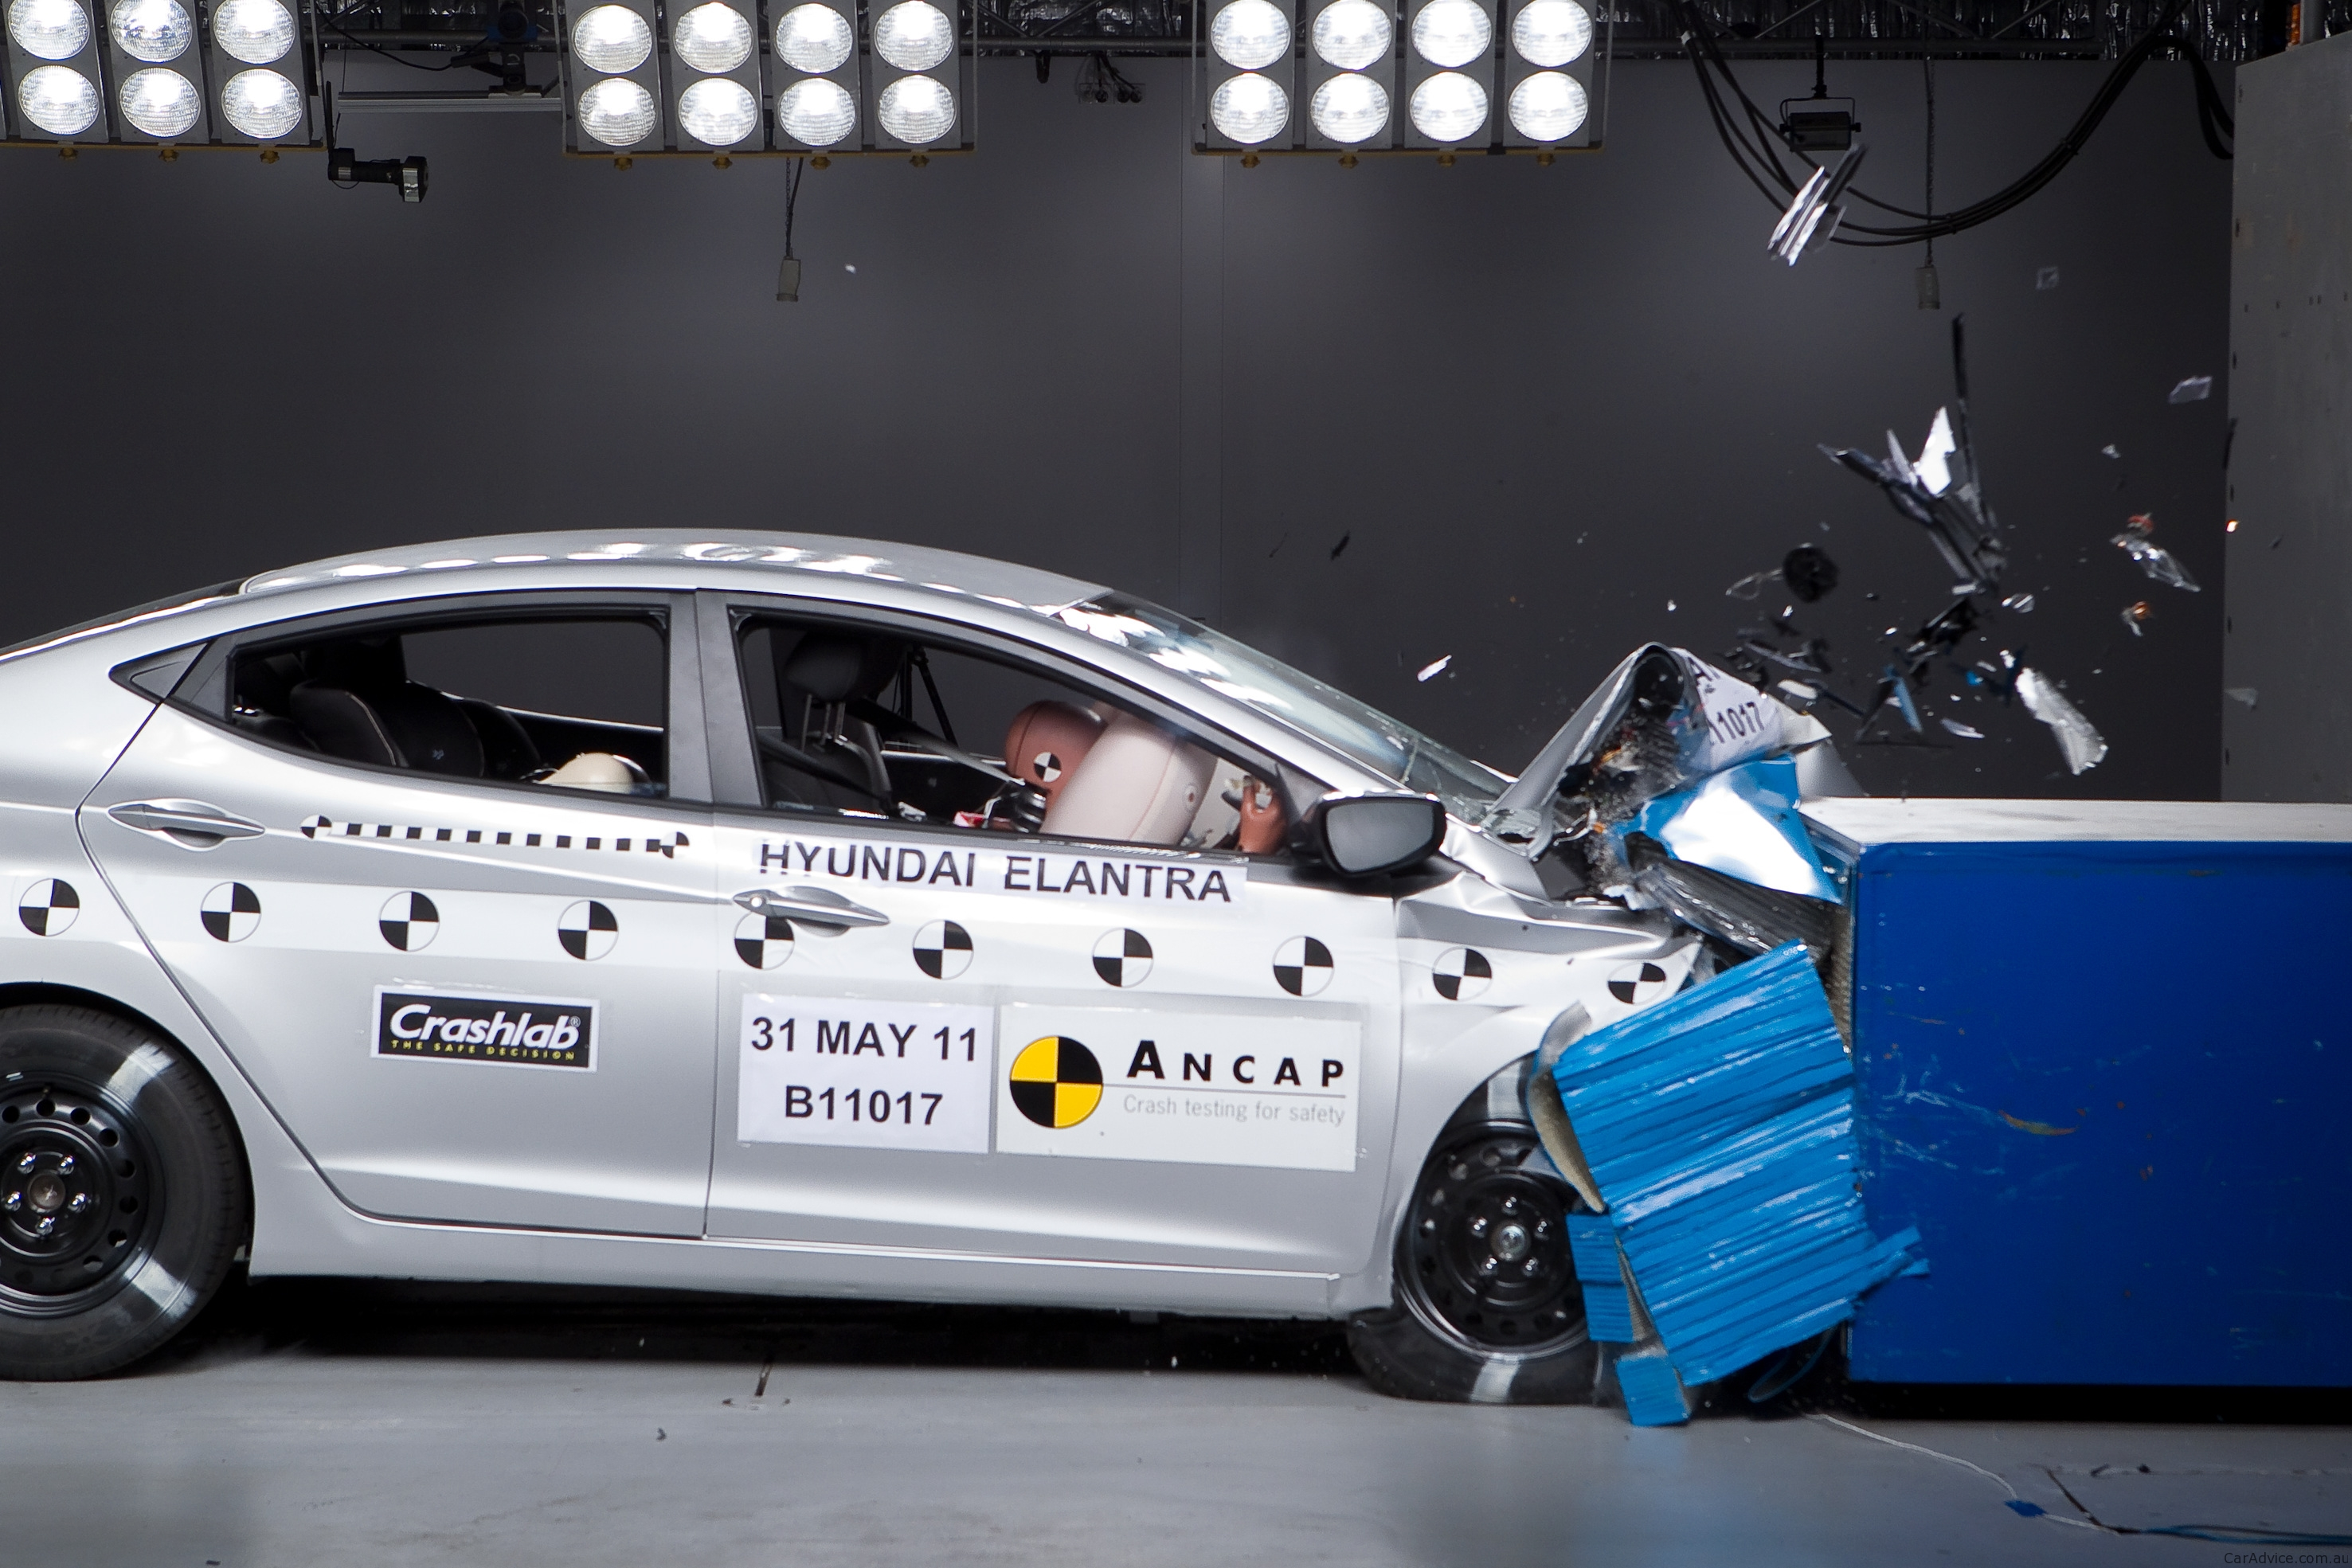 The Hyundai Elantra was awarded the maximum five-star safety rating after being tested by the Australasian New Car Assessment Program (ANCAP), pictured above.